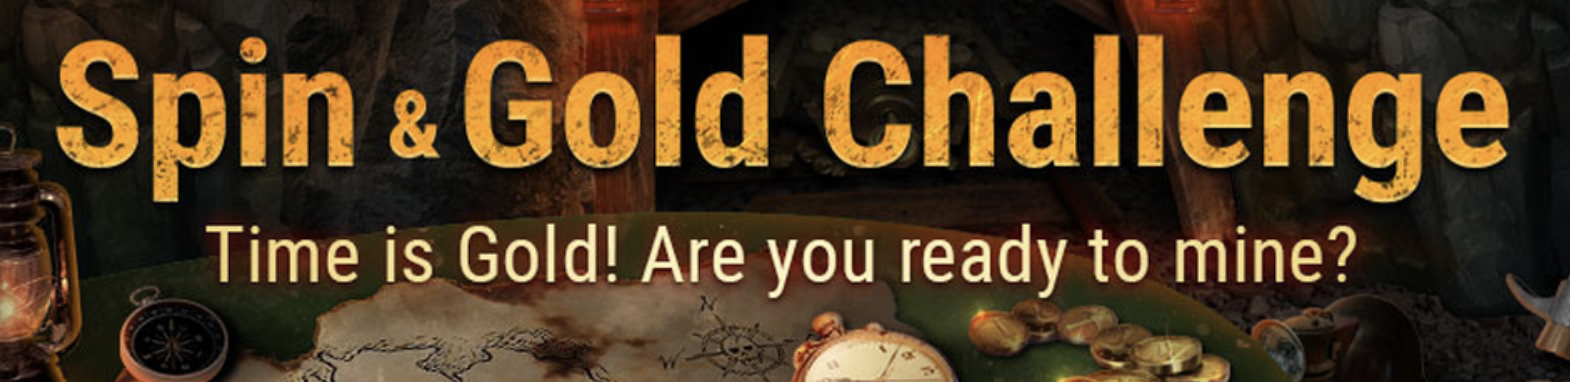 spin & gold challenge